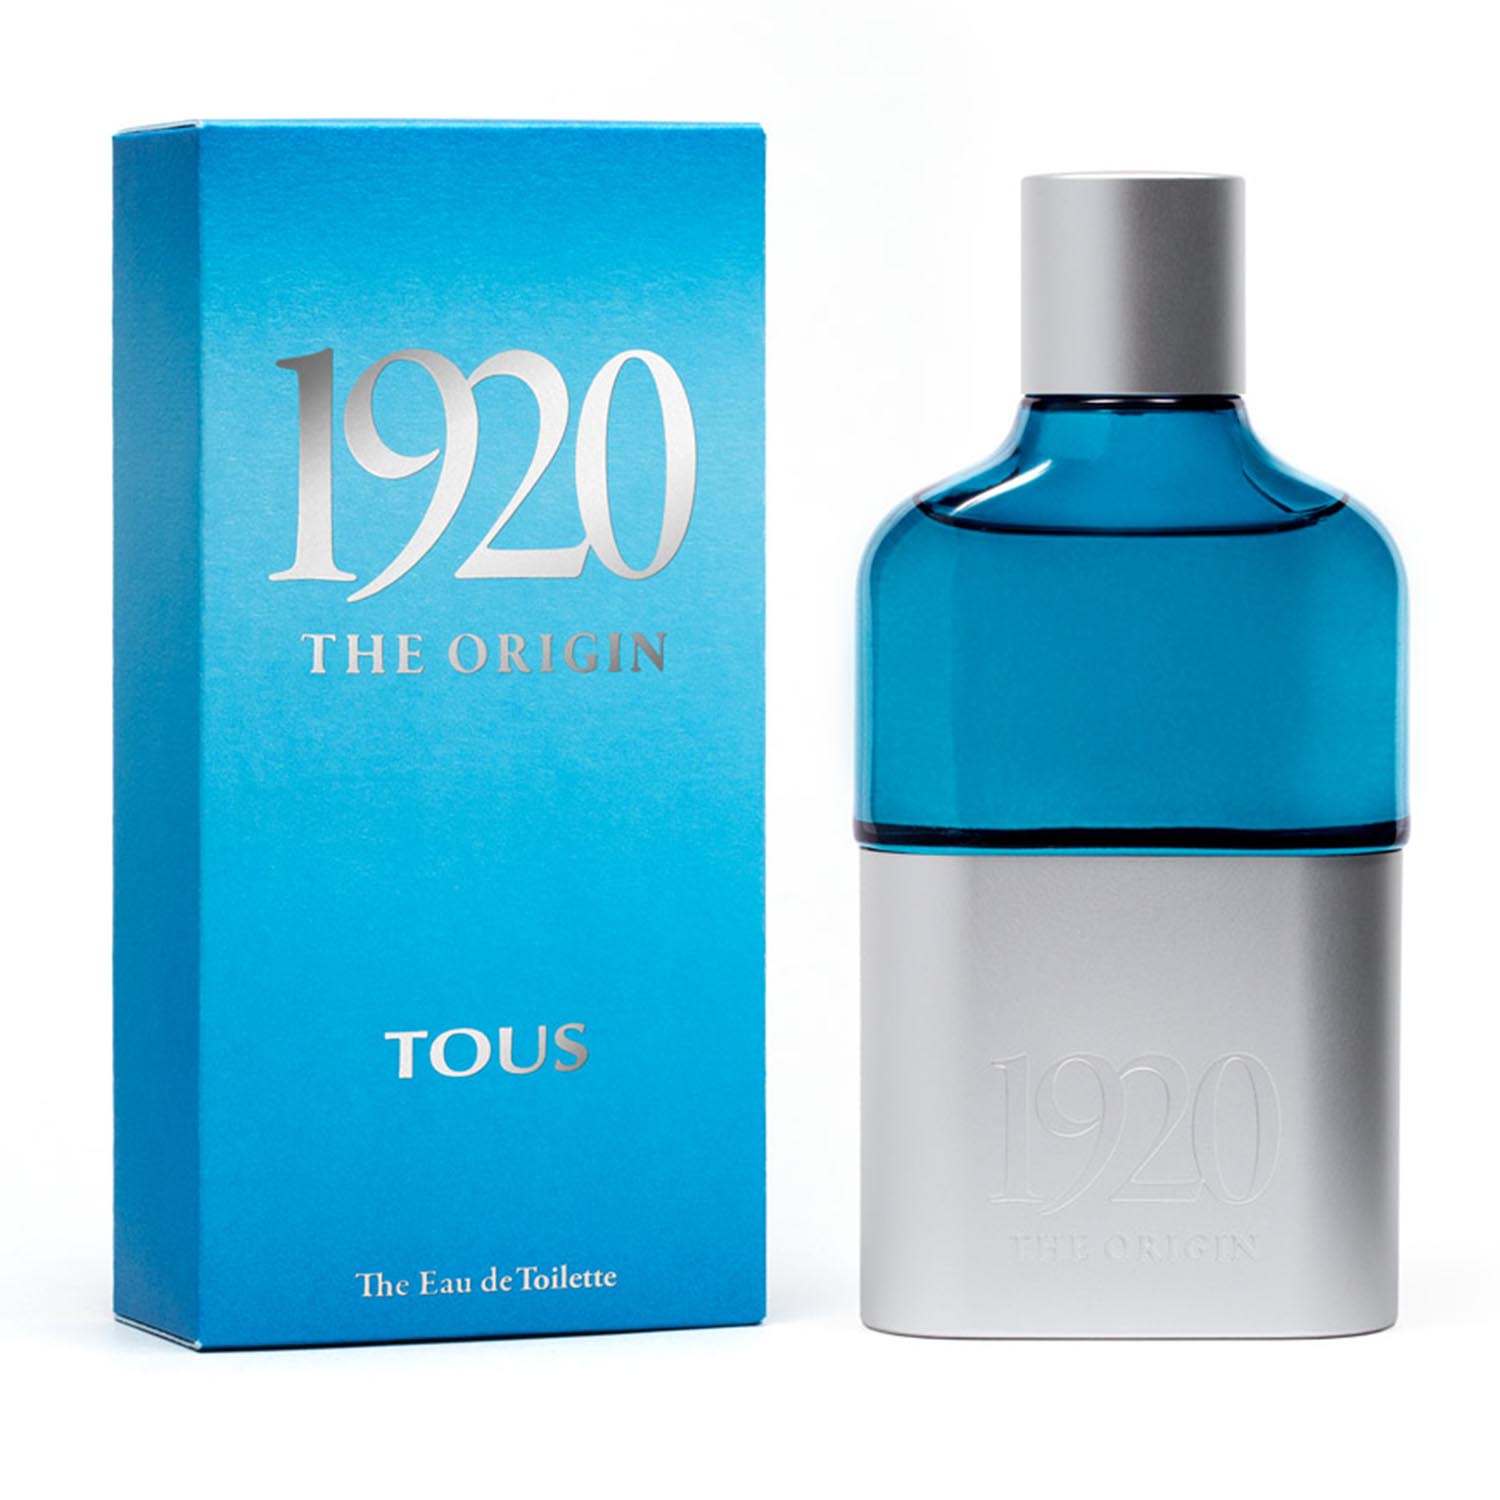 Tous 1920 the origin the eau de toilette 100ml vaporizador